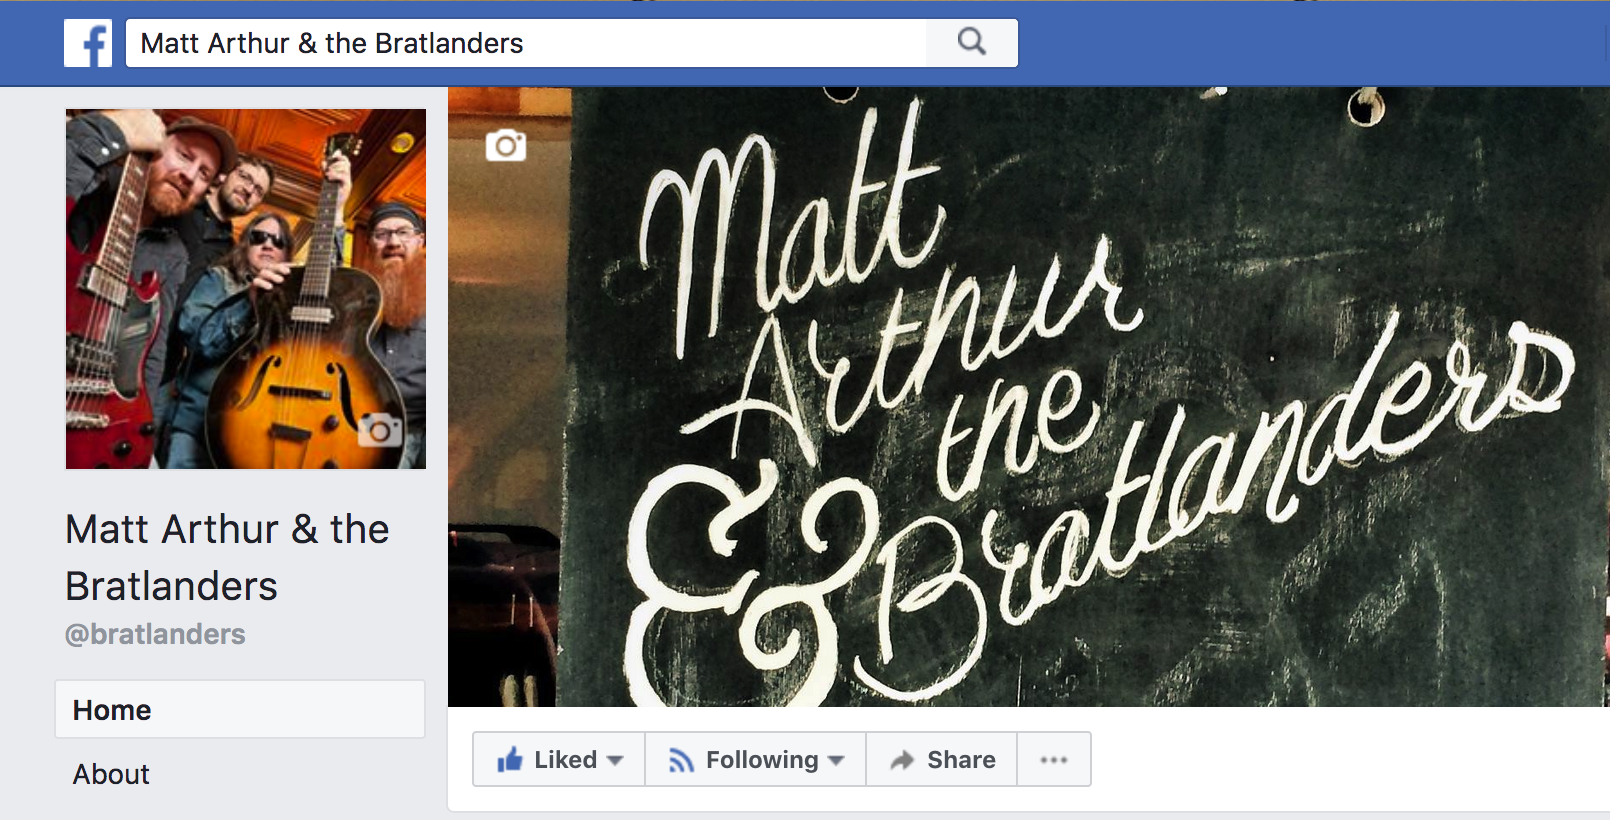 Bratlanders Facebook Page screenshot